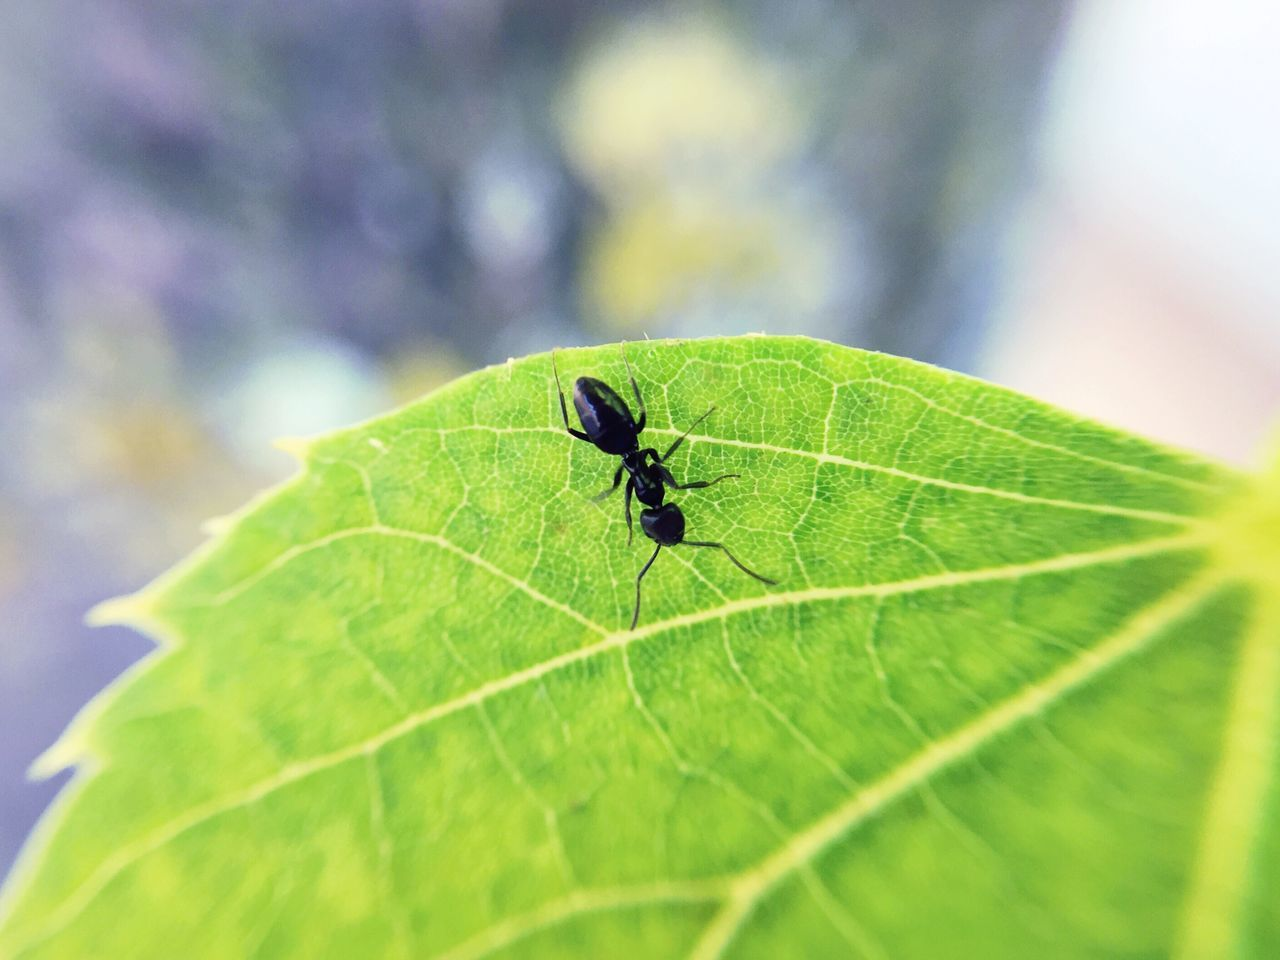 leaf, green color, nature, insect, one animal, animal themes, day, close-up, animals in the wild, no people, outdoors, beauty in nature, fragility, freshness